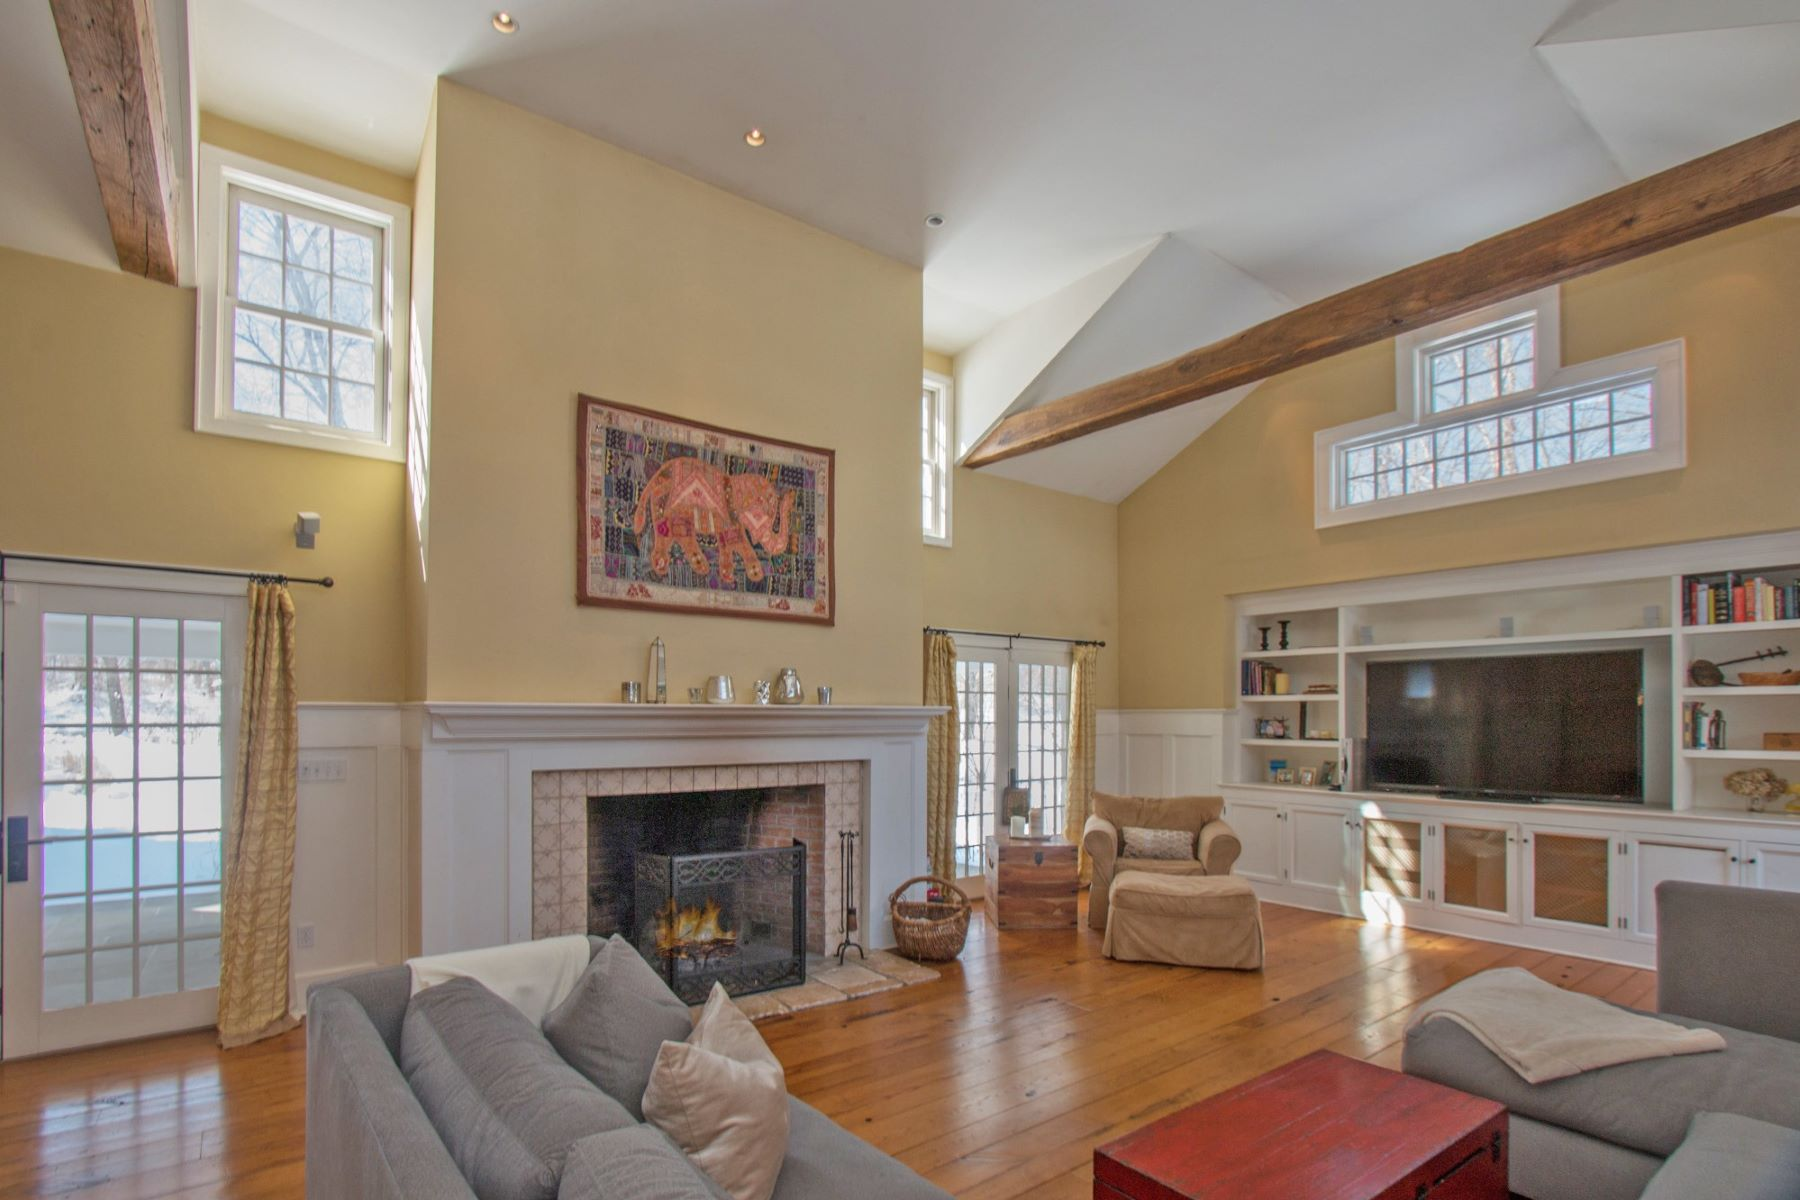 Single Family Homes for Sale at 203 Ridgefield Road Wilton, Connecticut 06897 United States